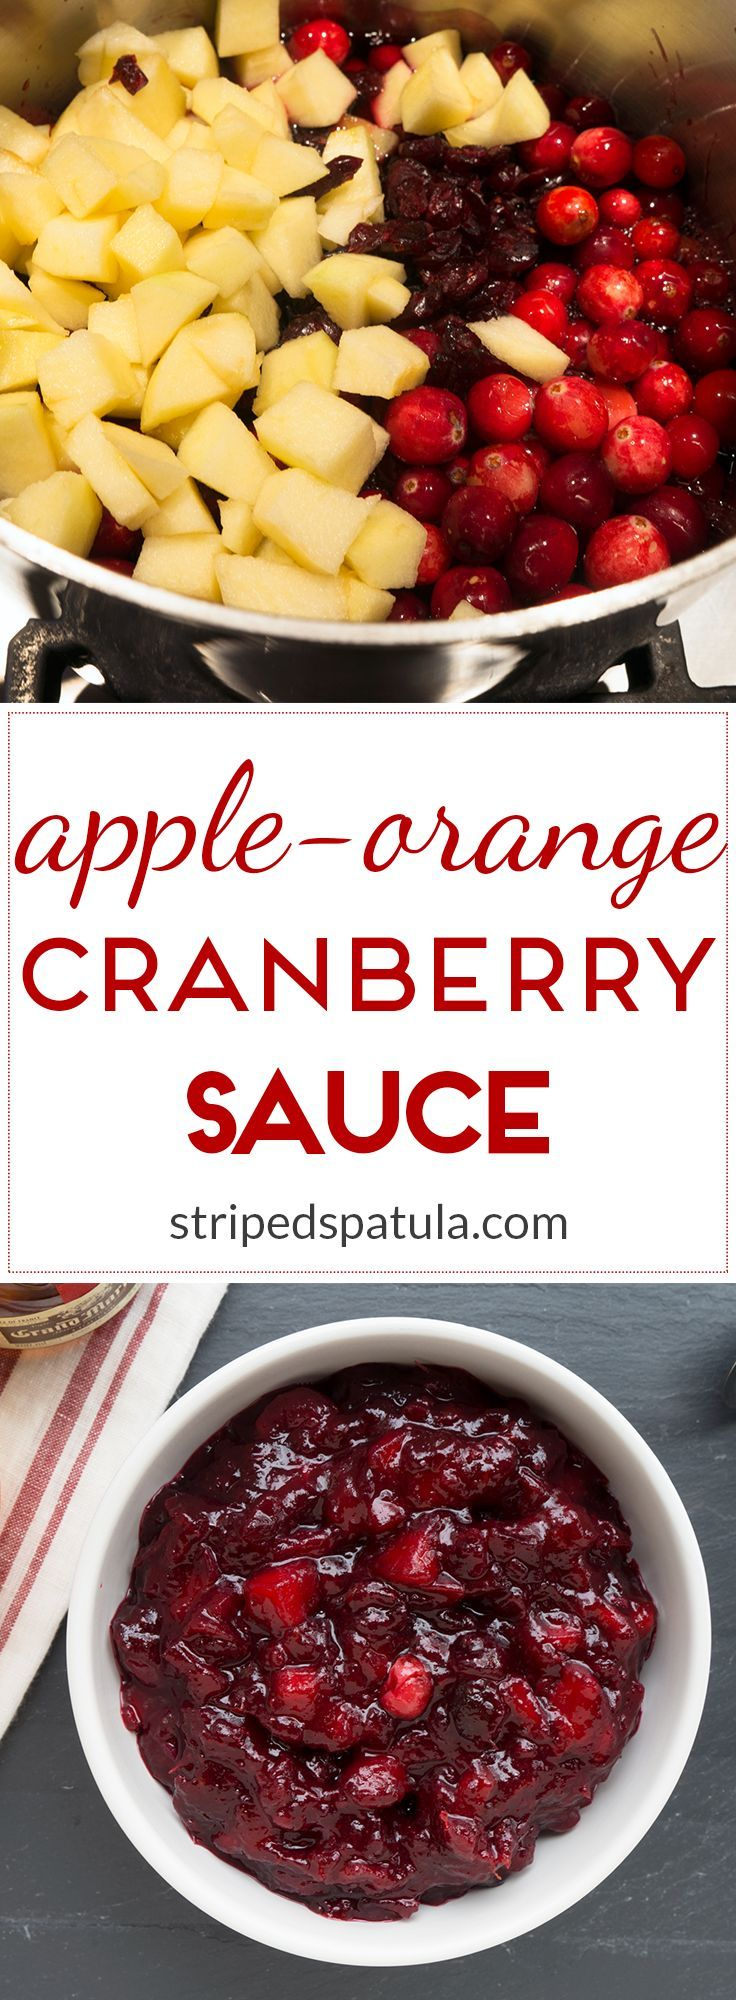 Easy to prepare, gently-spiced, and bursting with fruit flavor, this cranberry sauce is a great addition to any Thanksgiving feast.